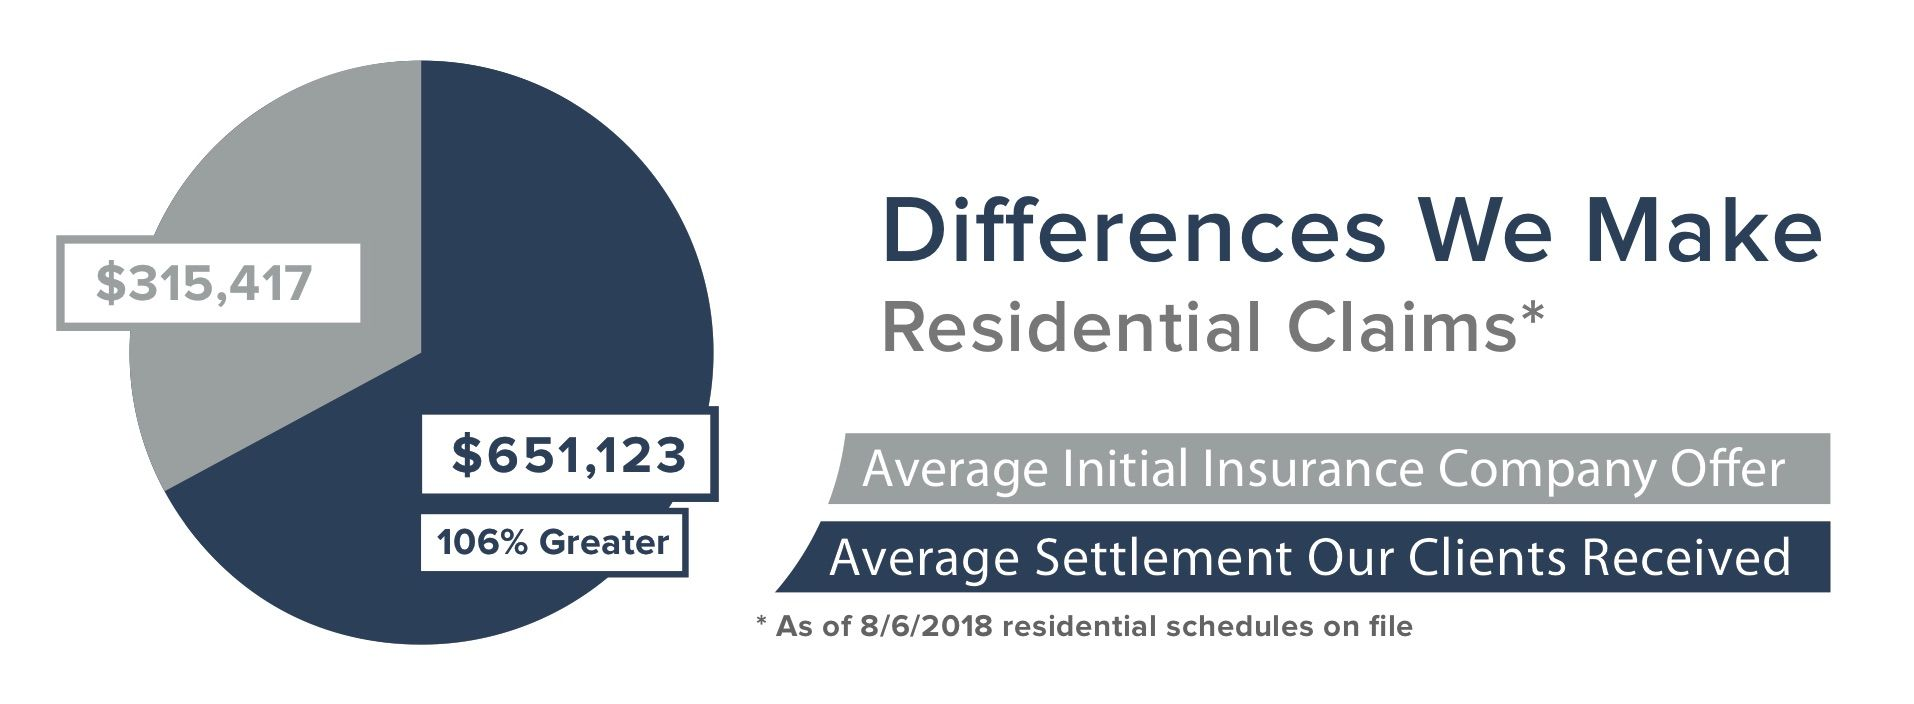 Here Is An Example Of The Average Residential Claims That Are